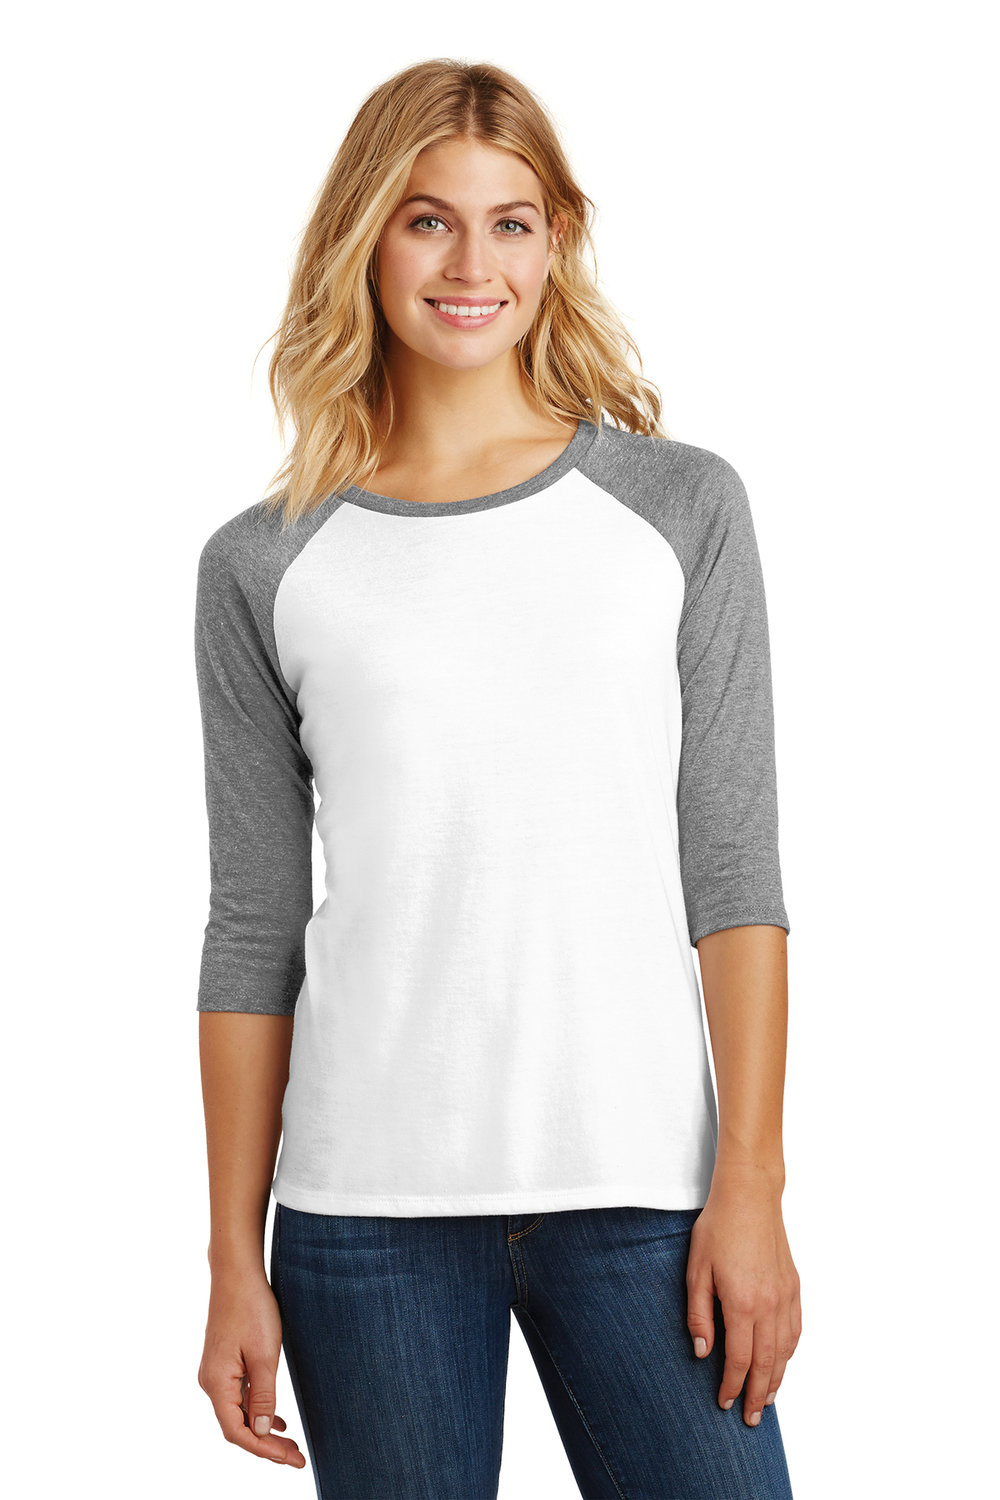 Women's 3/4 Crew - White (shown), Black, Navy, Pink, or Royal Blue | $12